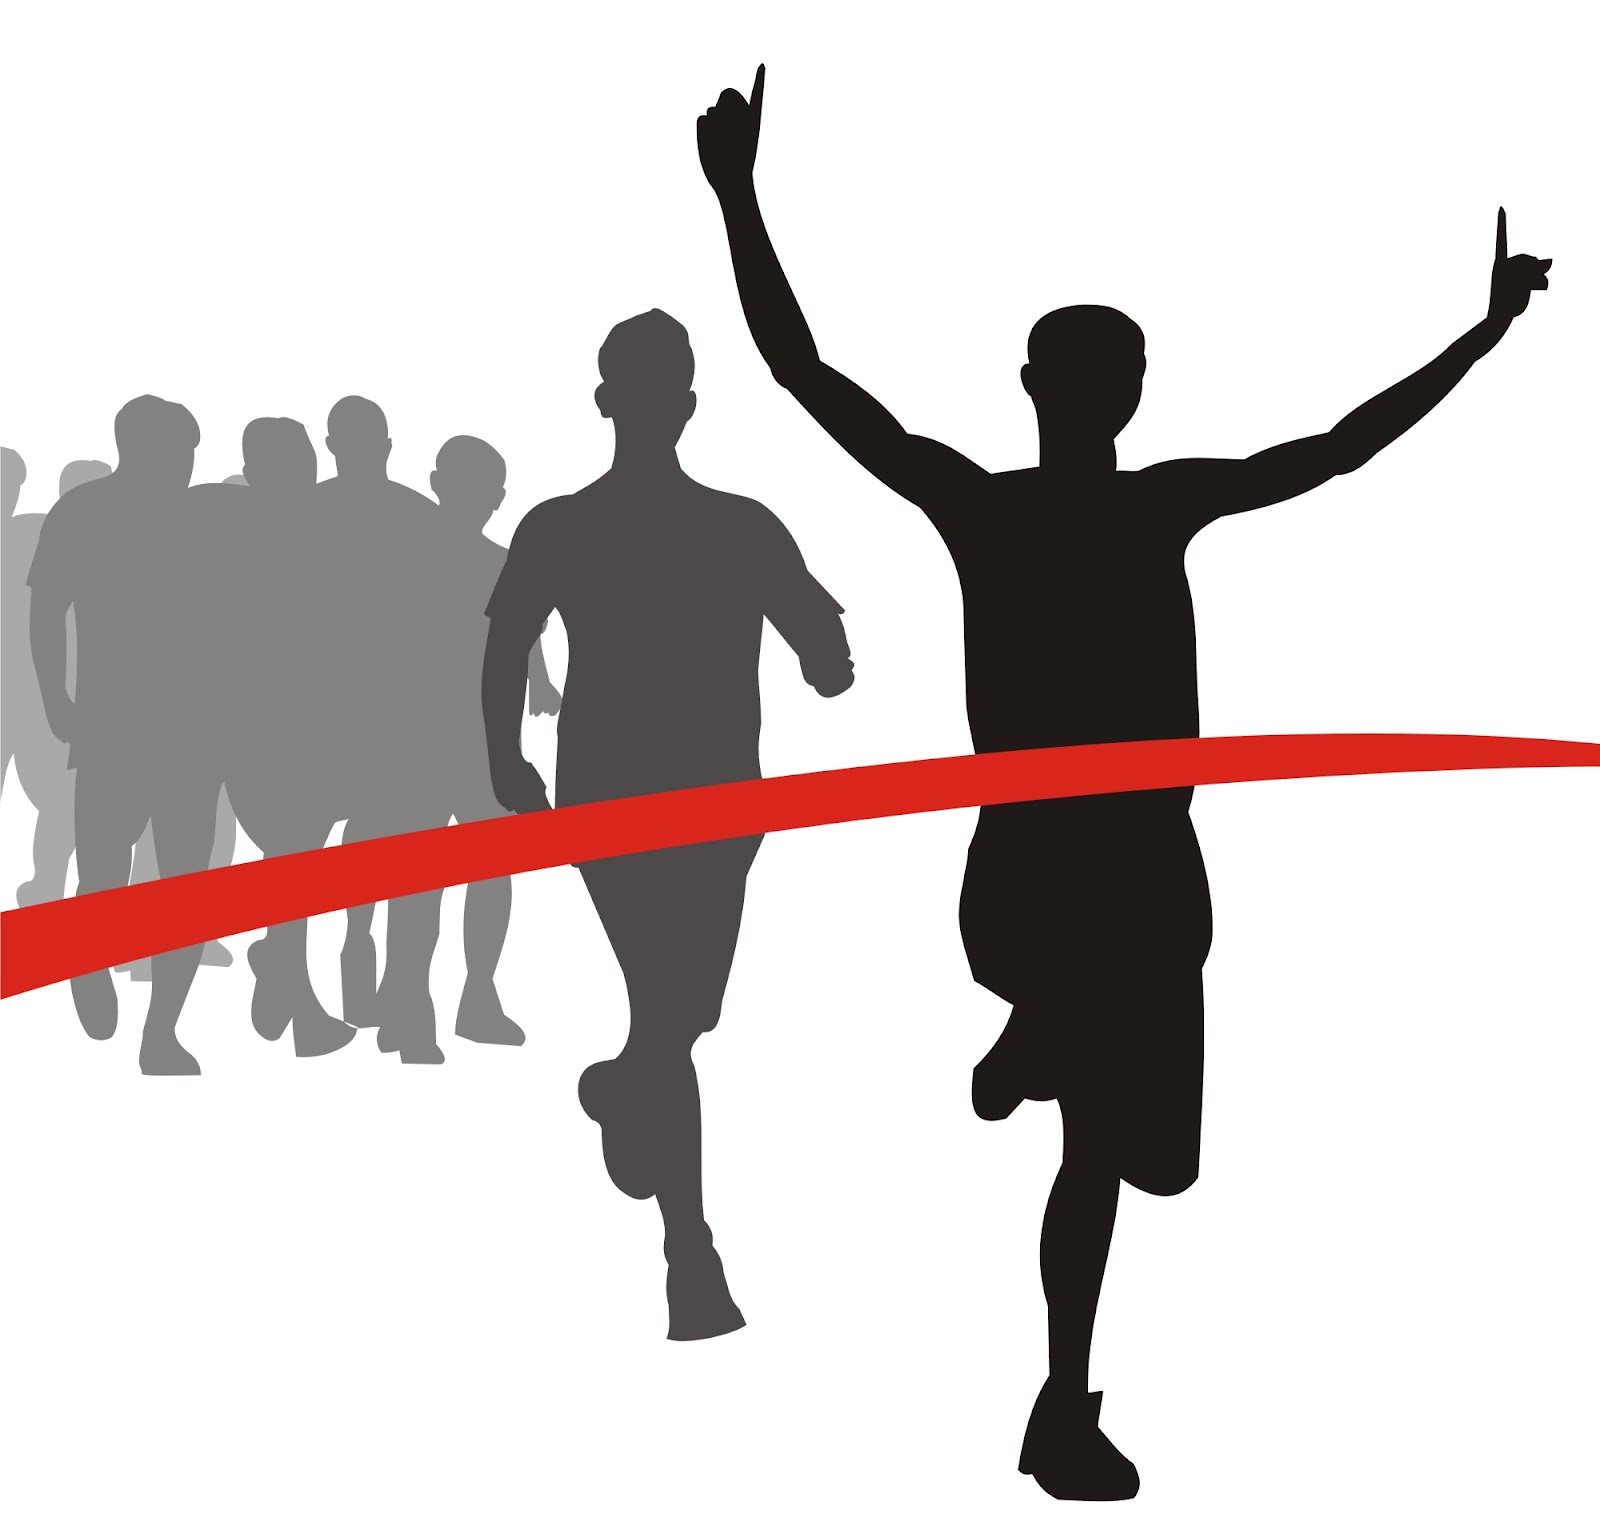 Runner crossing finish line clipart clip freeuse library Free Finish Line Cliparts, Download Free Clip Art, Free Clip Art on ... clip freeuse library